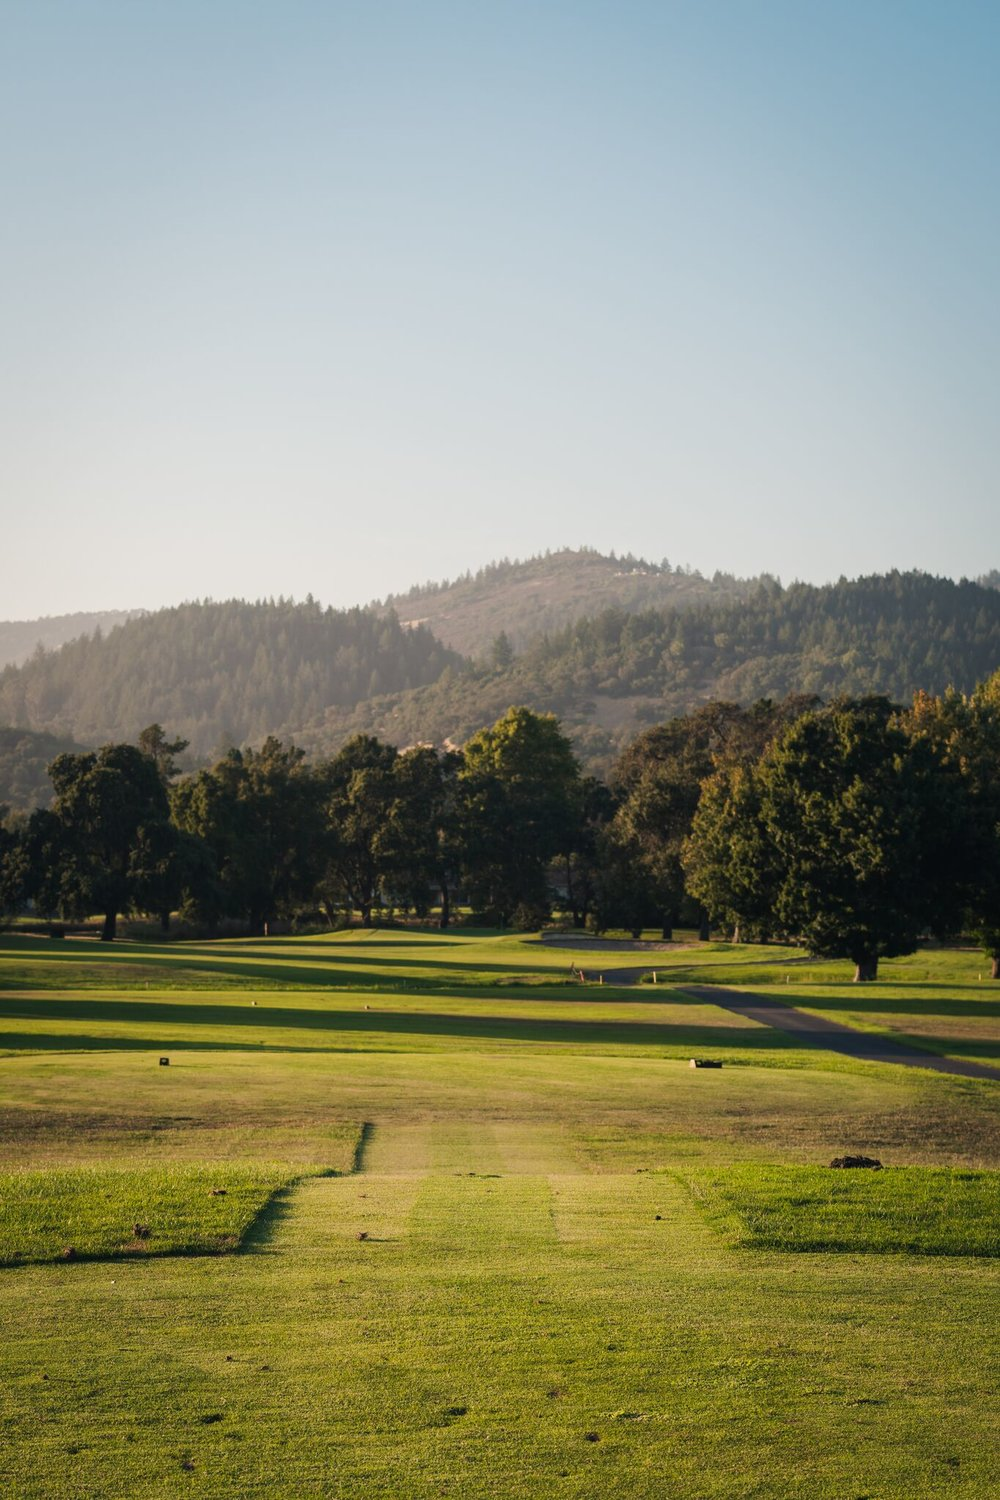 Success Stories - The lessons are helping me find balance, helping me slow down, feel the flow, trust and breath. Learning these things have really helped me in life, and my golf game. My handicap has dropped from 29 TO 23 in 10 months. -Art F.No matter what part of your game you are trying to improve, Rebecka's techniques will give you confidence and consistency. She is extremely patient, encouraging, and funny - making lessons a lot of fun. -Chloe L.Rebecka is an excellent trainer - she allows your golf swing to reflect you and not some